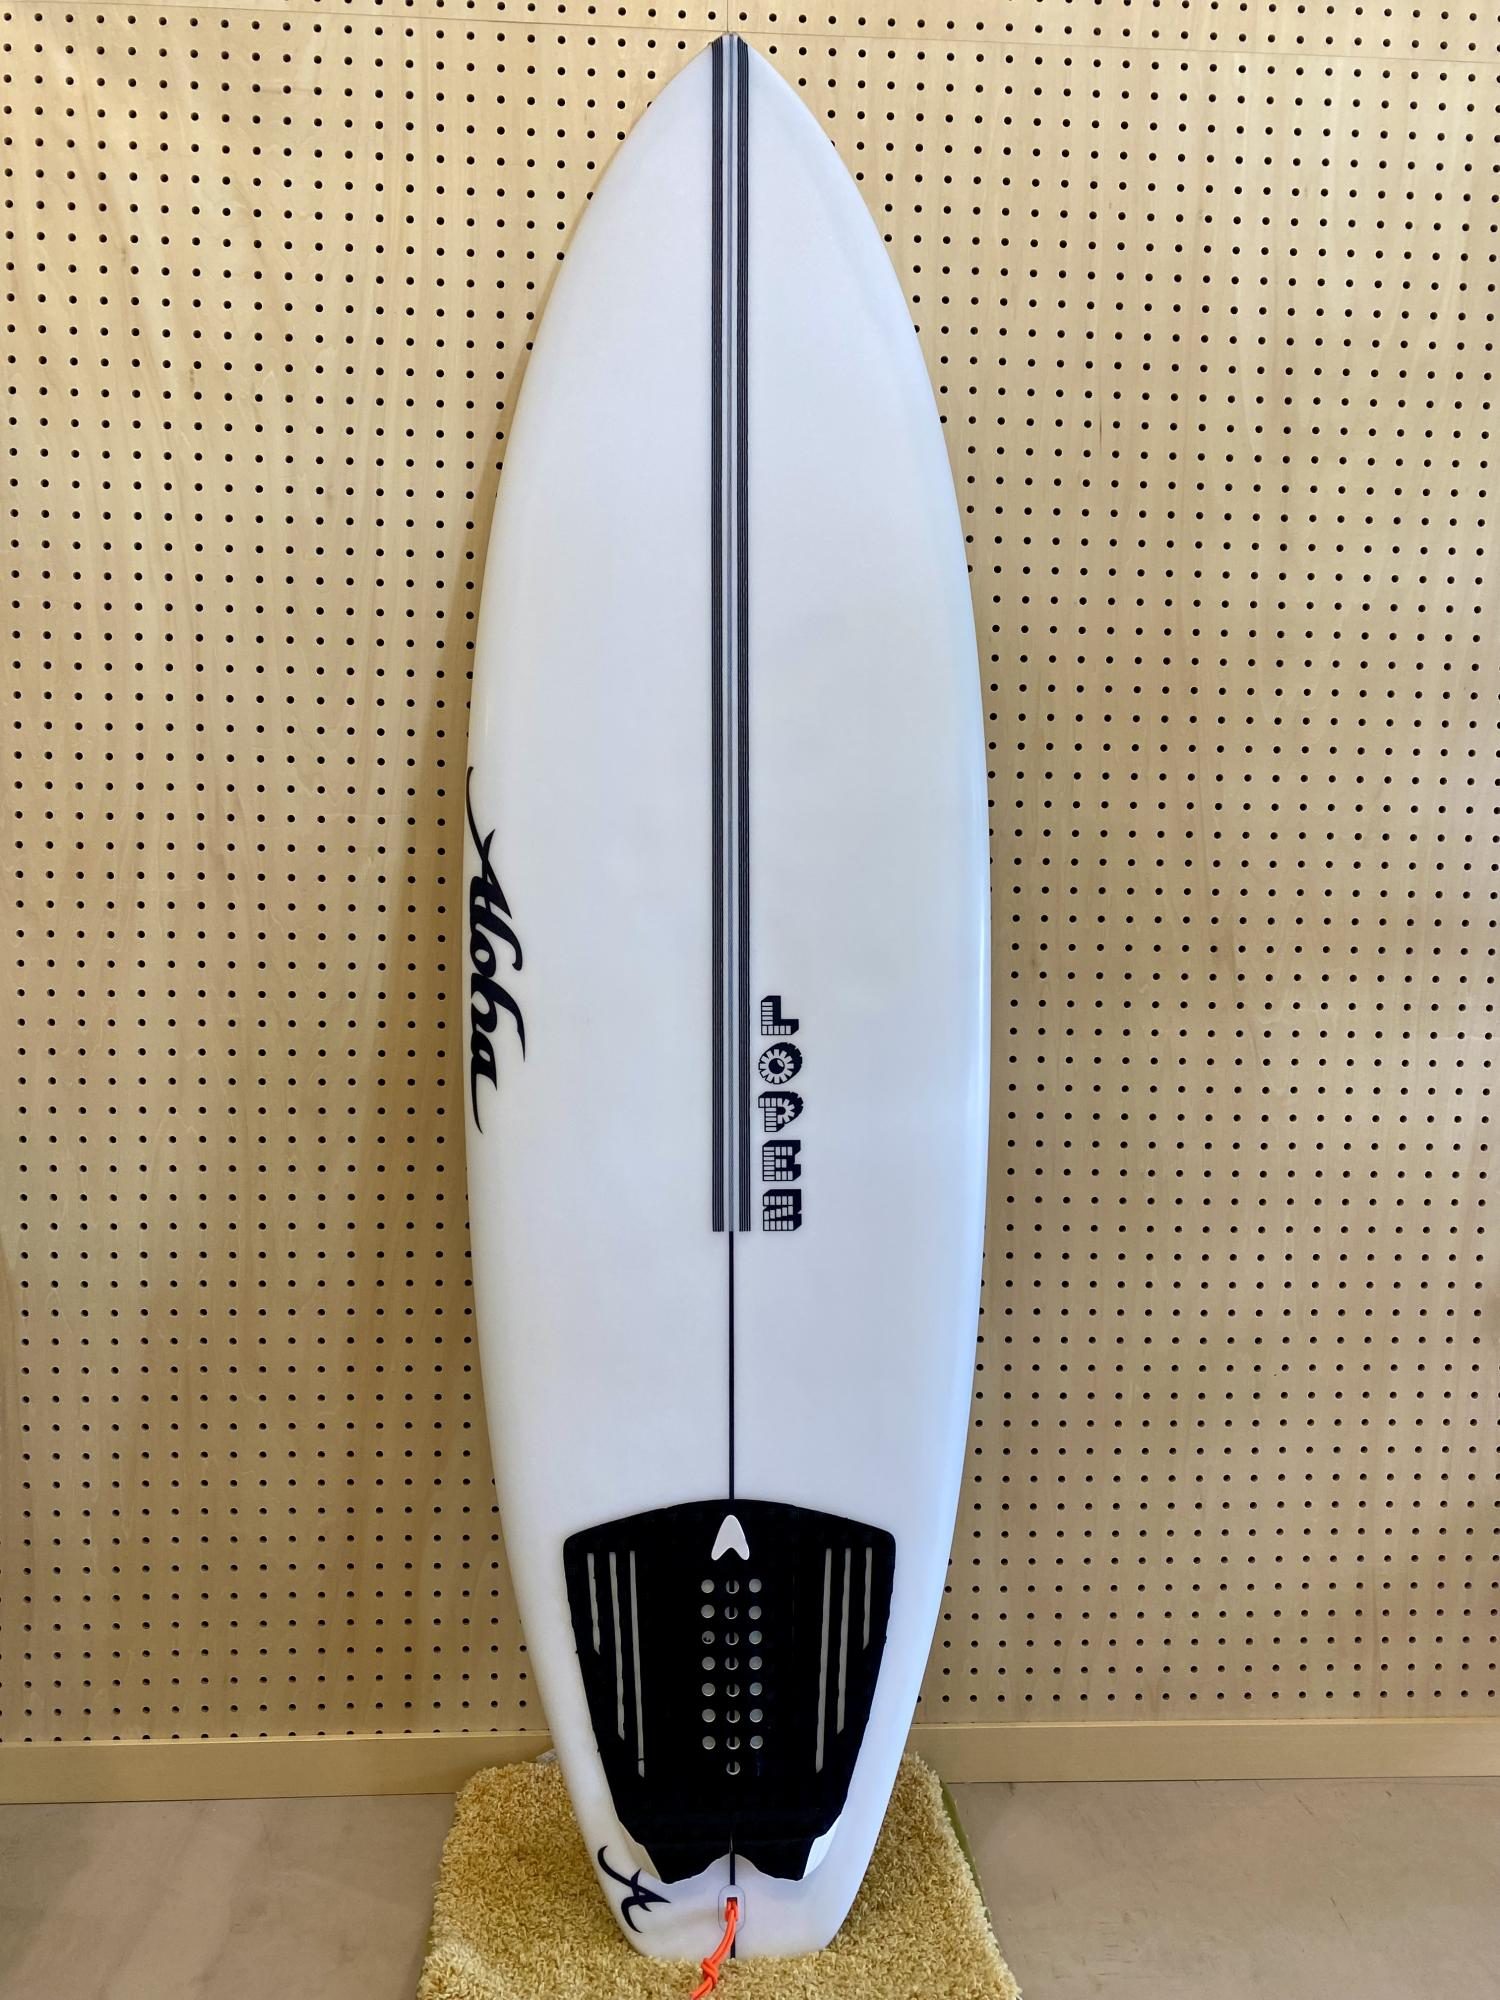 USED BOARDS (FIREWIRE SURFBOARDS BAKED POTATO 5.1)